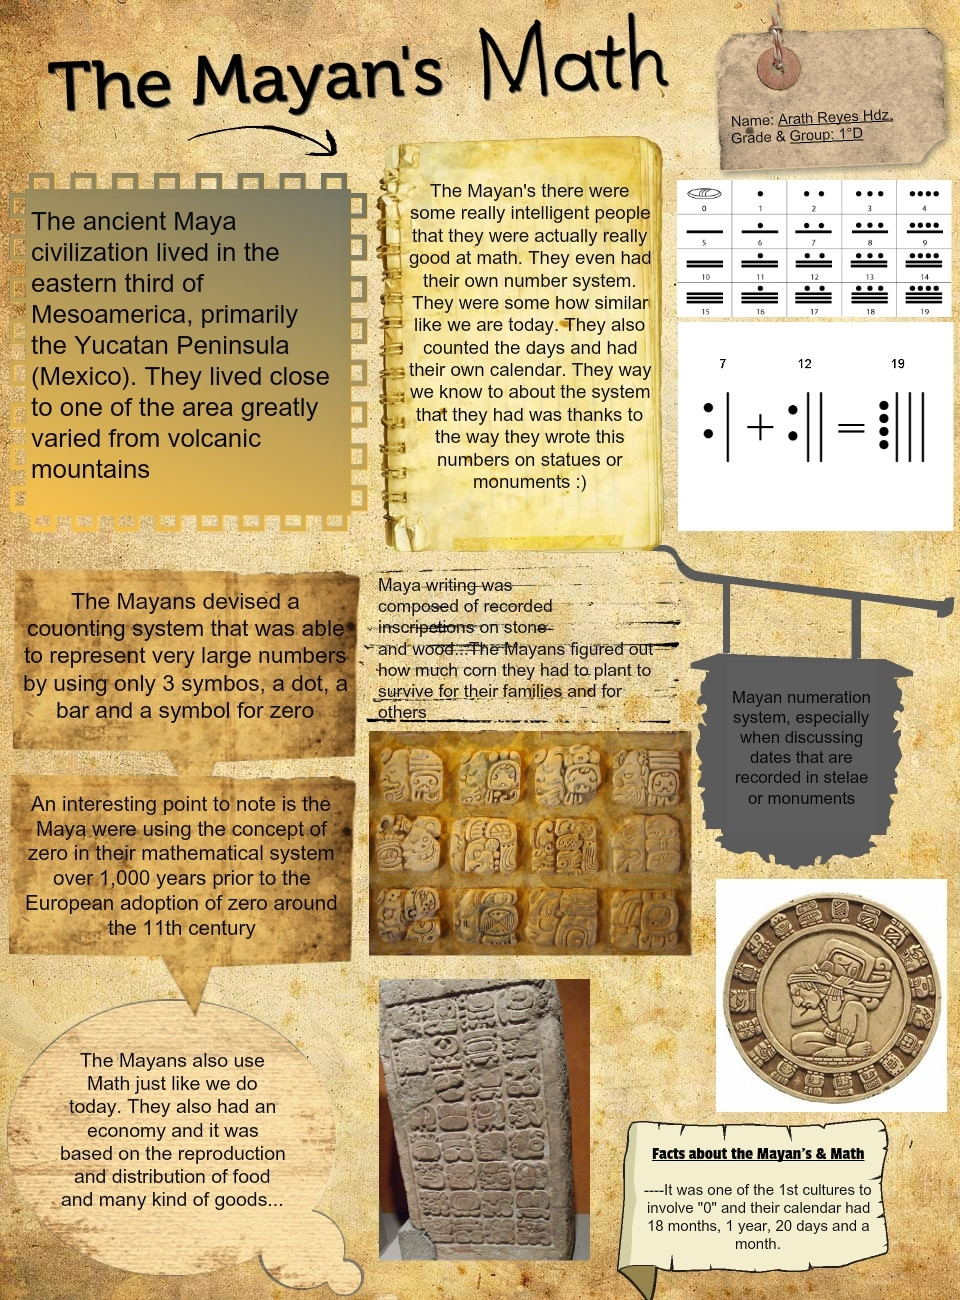 The Mayan's Math: Ancient, Civilization, En, History, Math